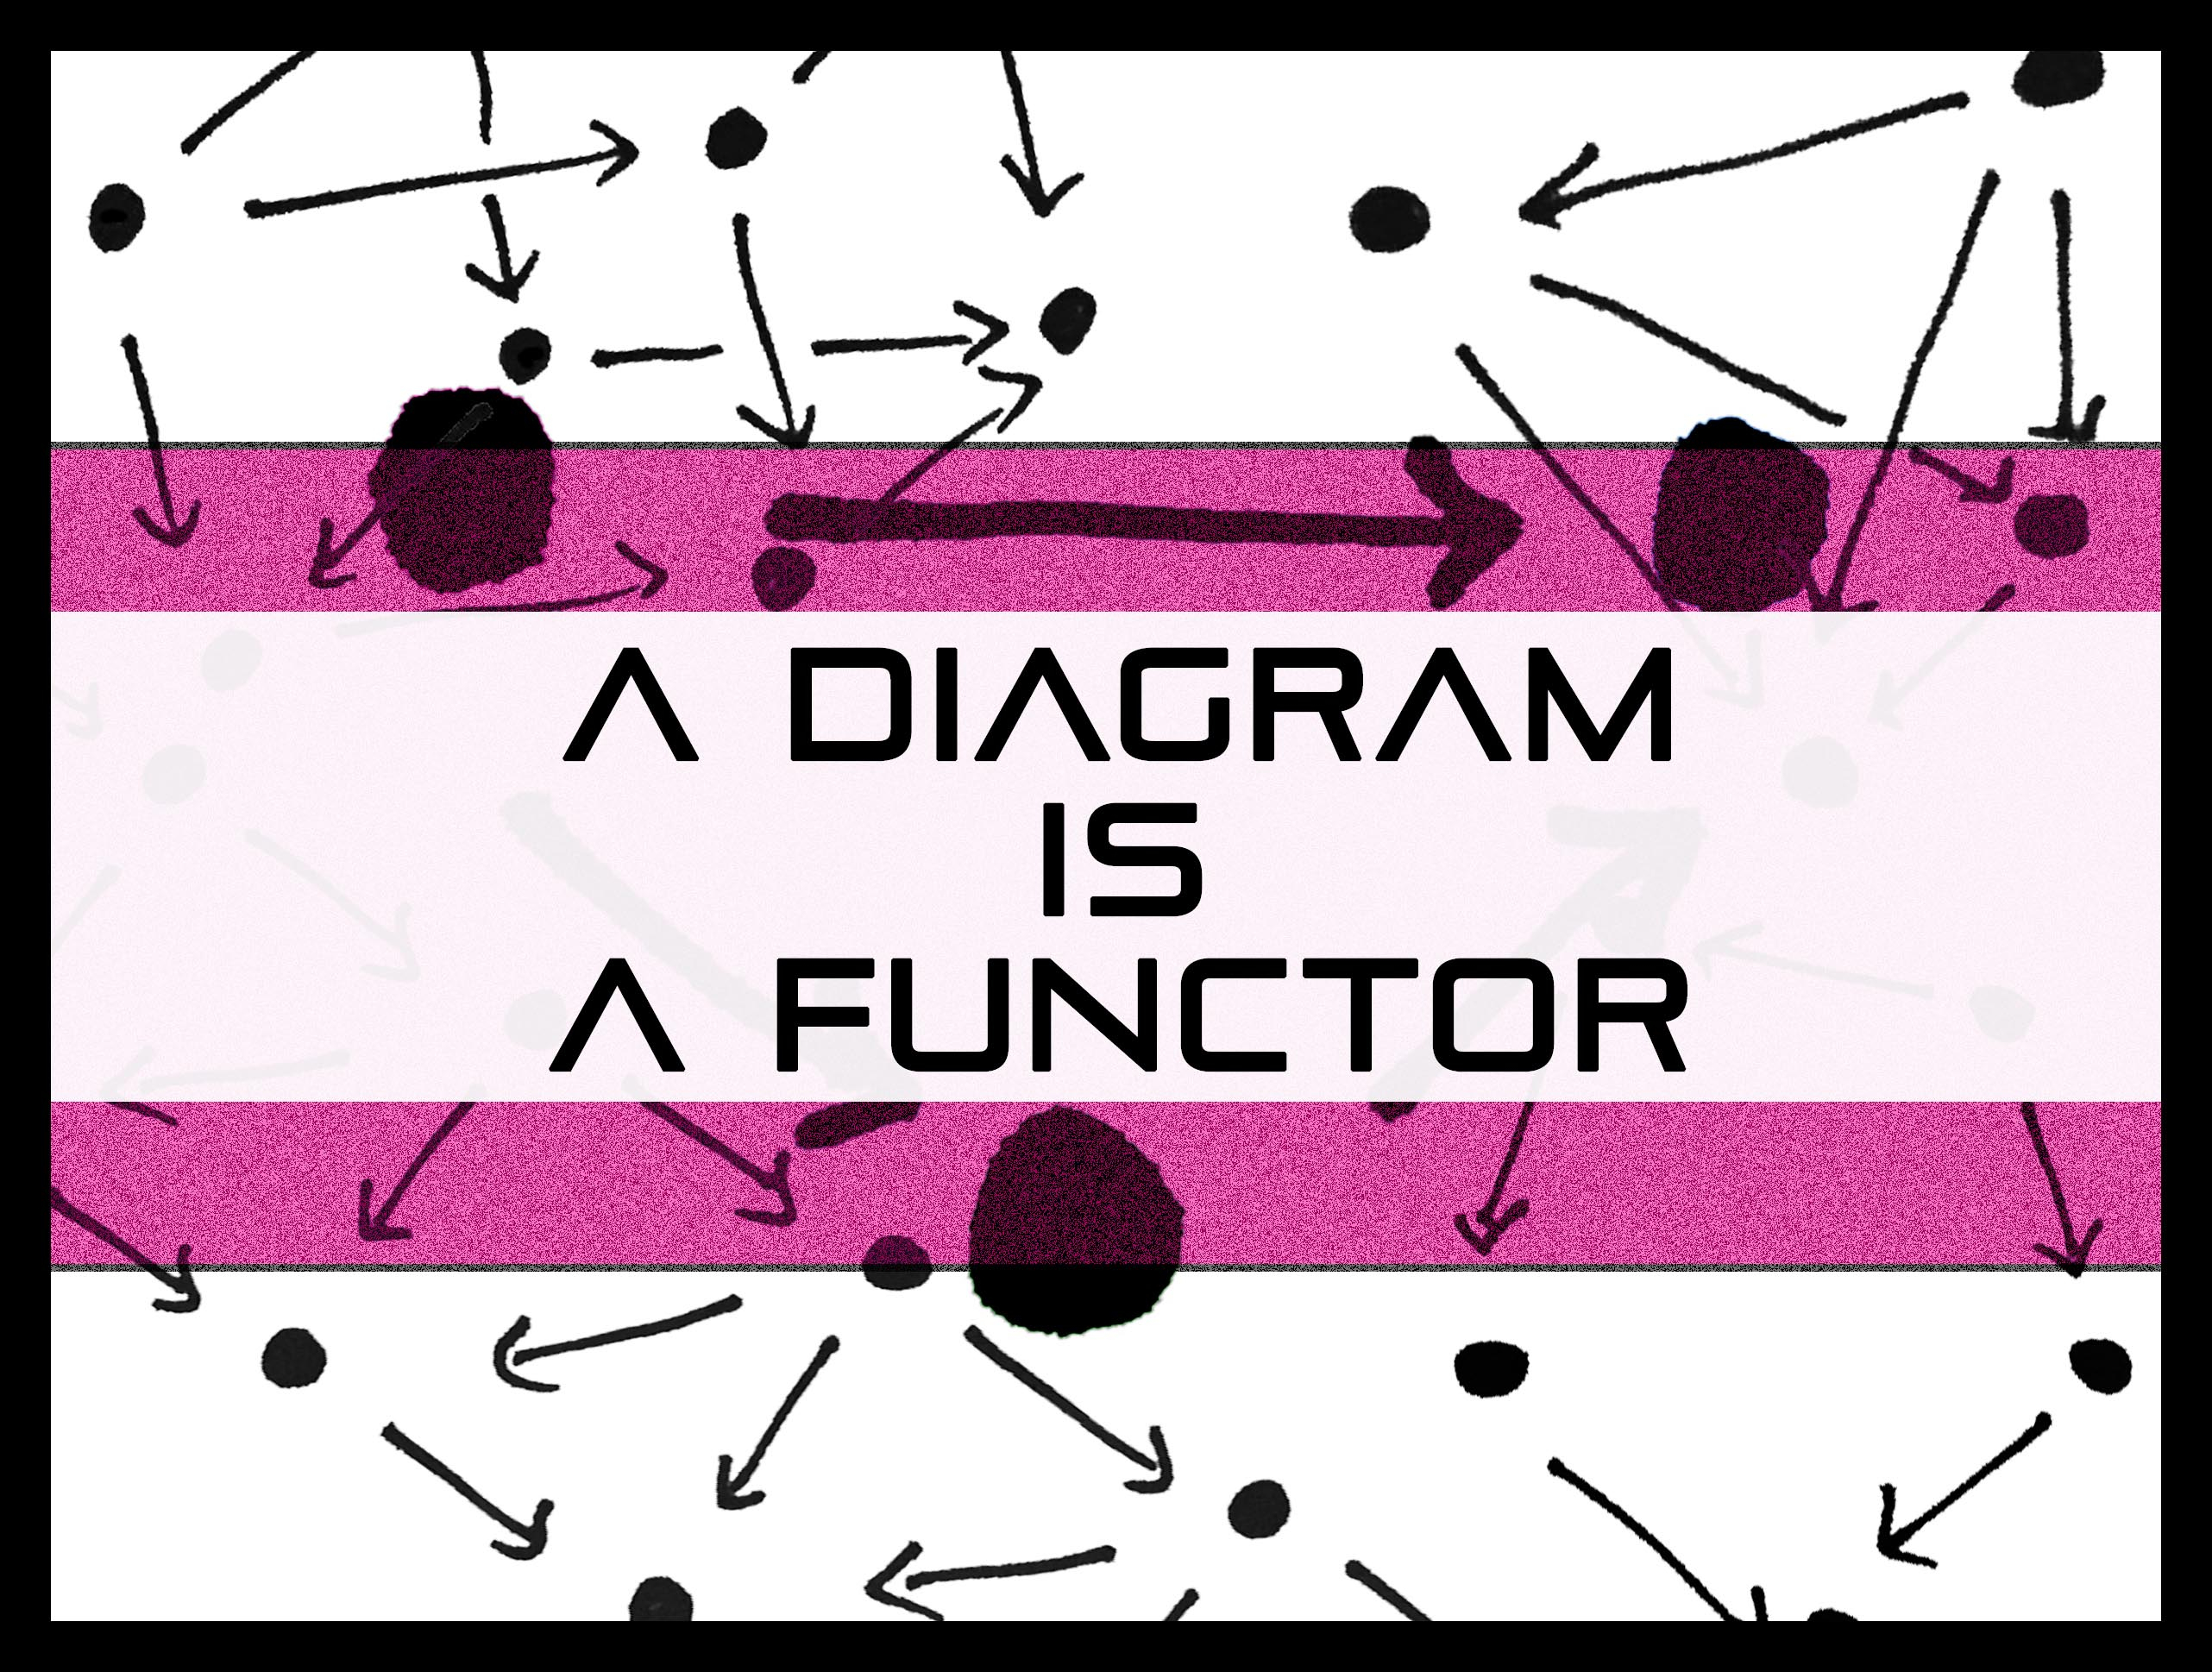 What Is A Diagram A Diagram Is A Functor